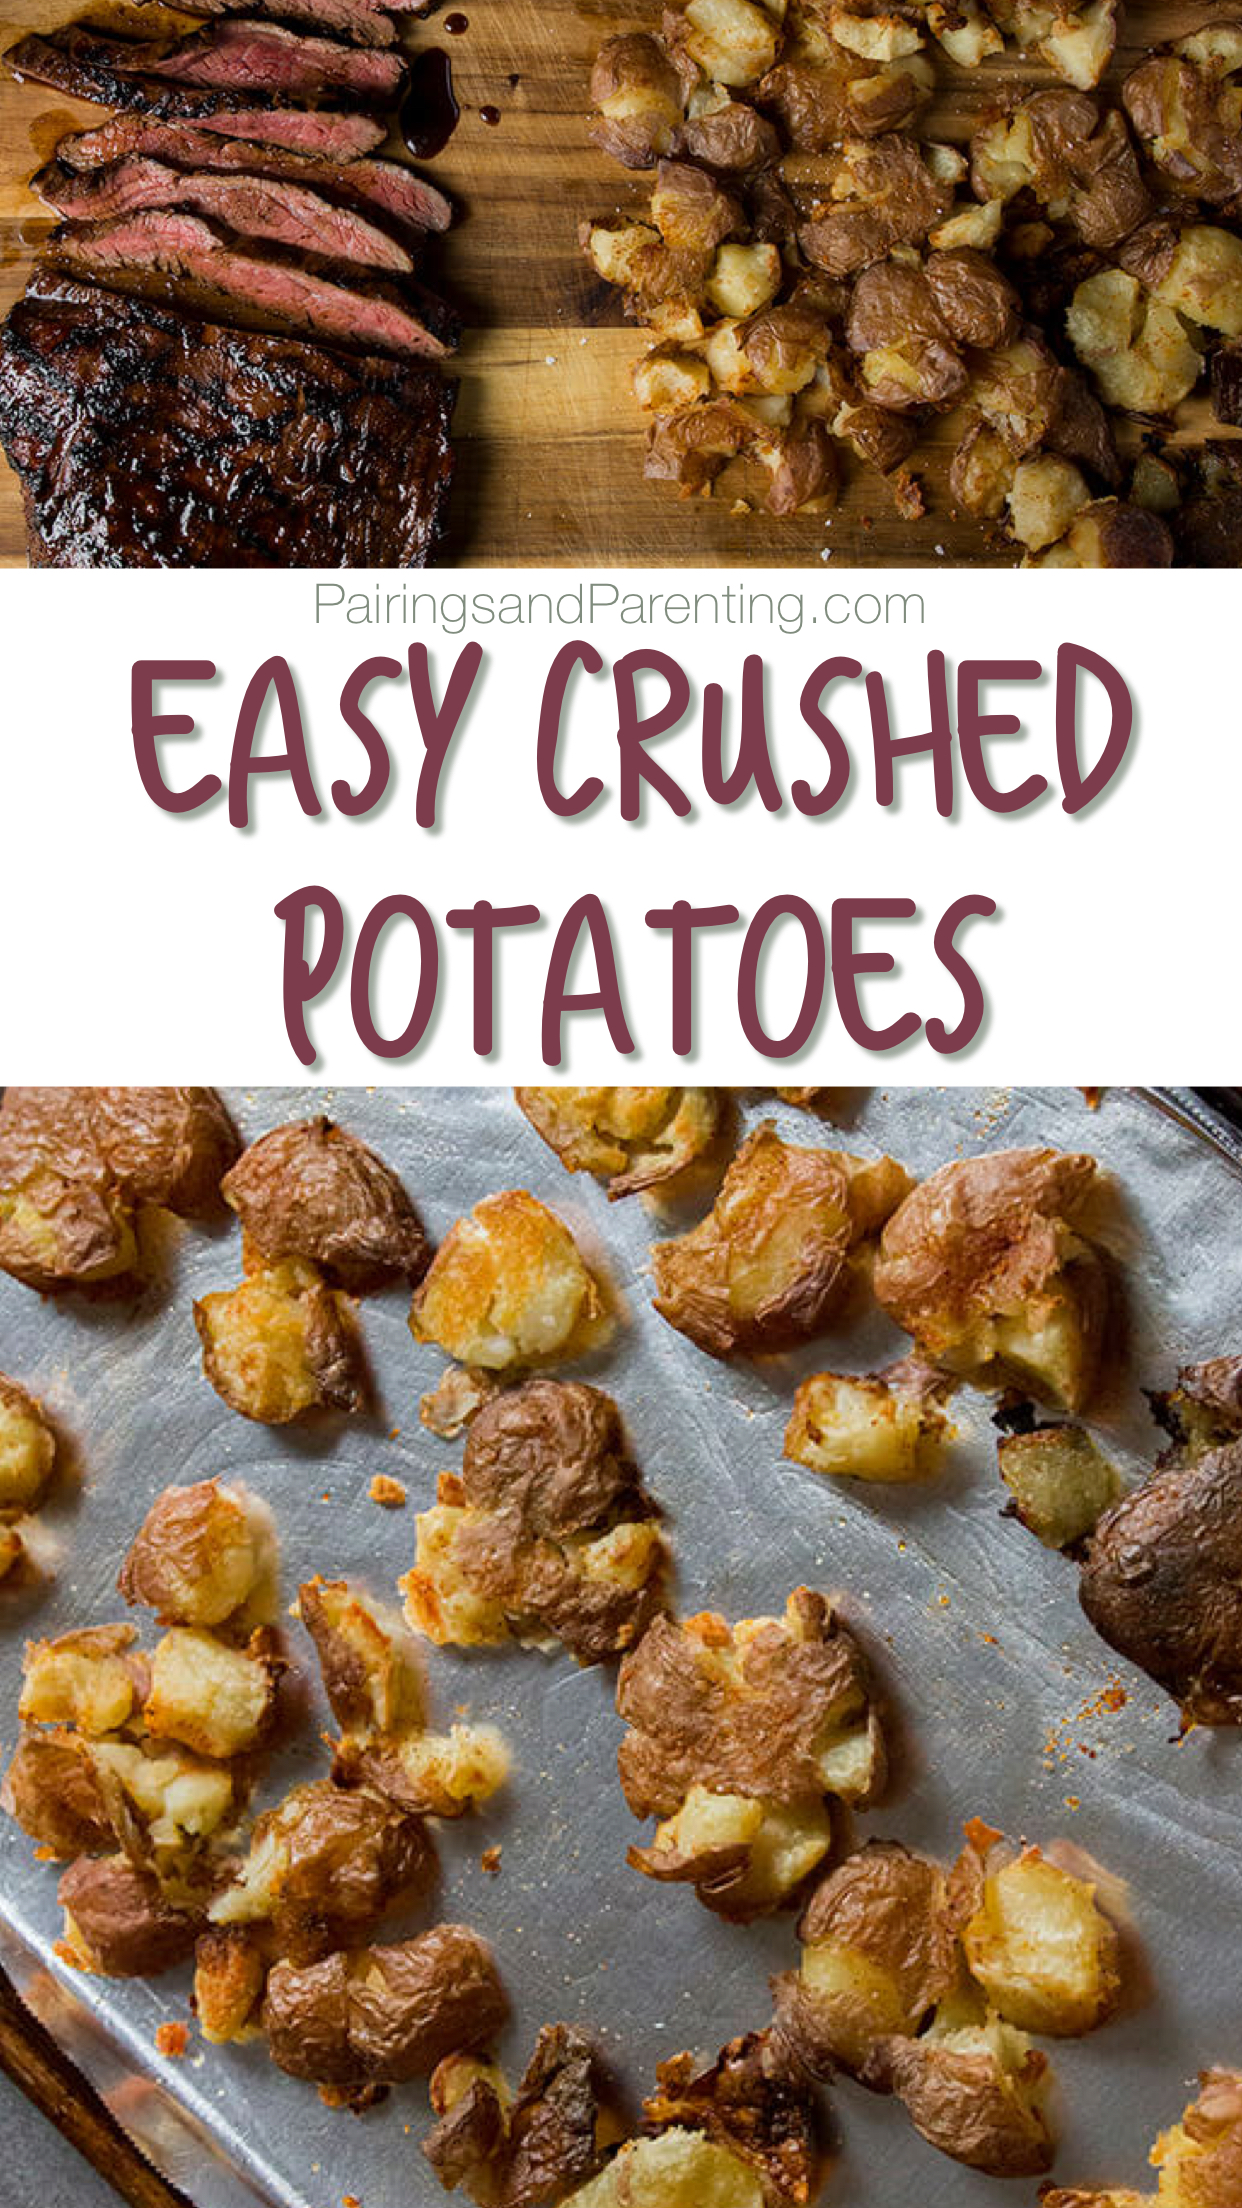 Easy Crushed Potatoes